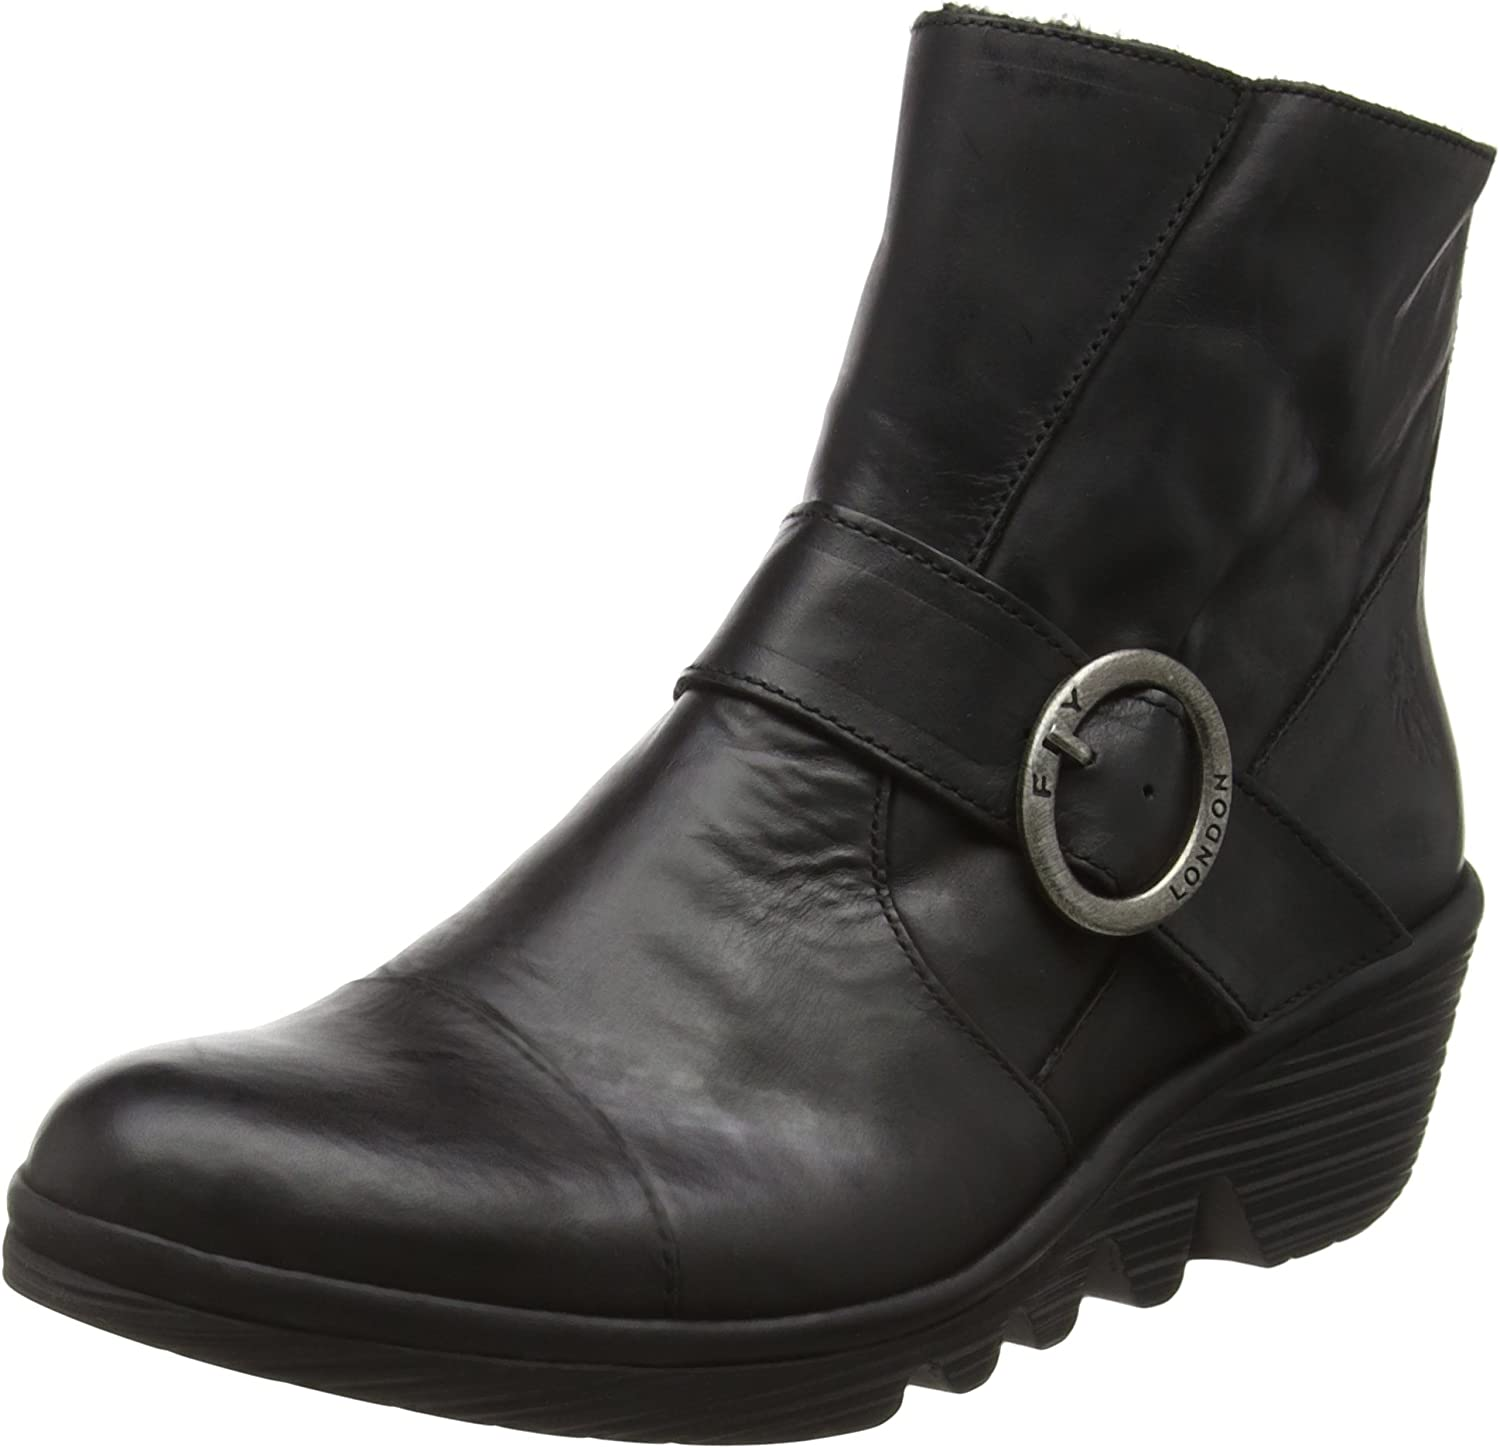 Fly London Women's Pais Casual Ankle Boots Black